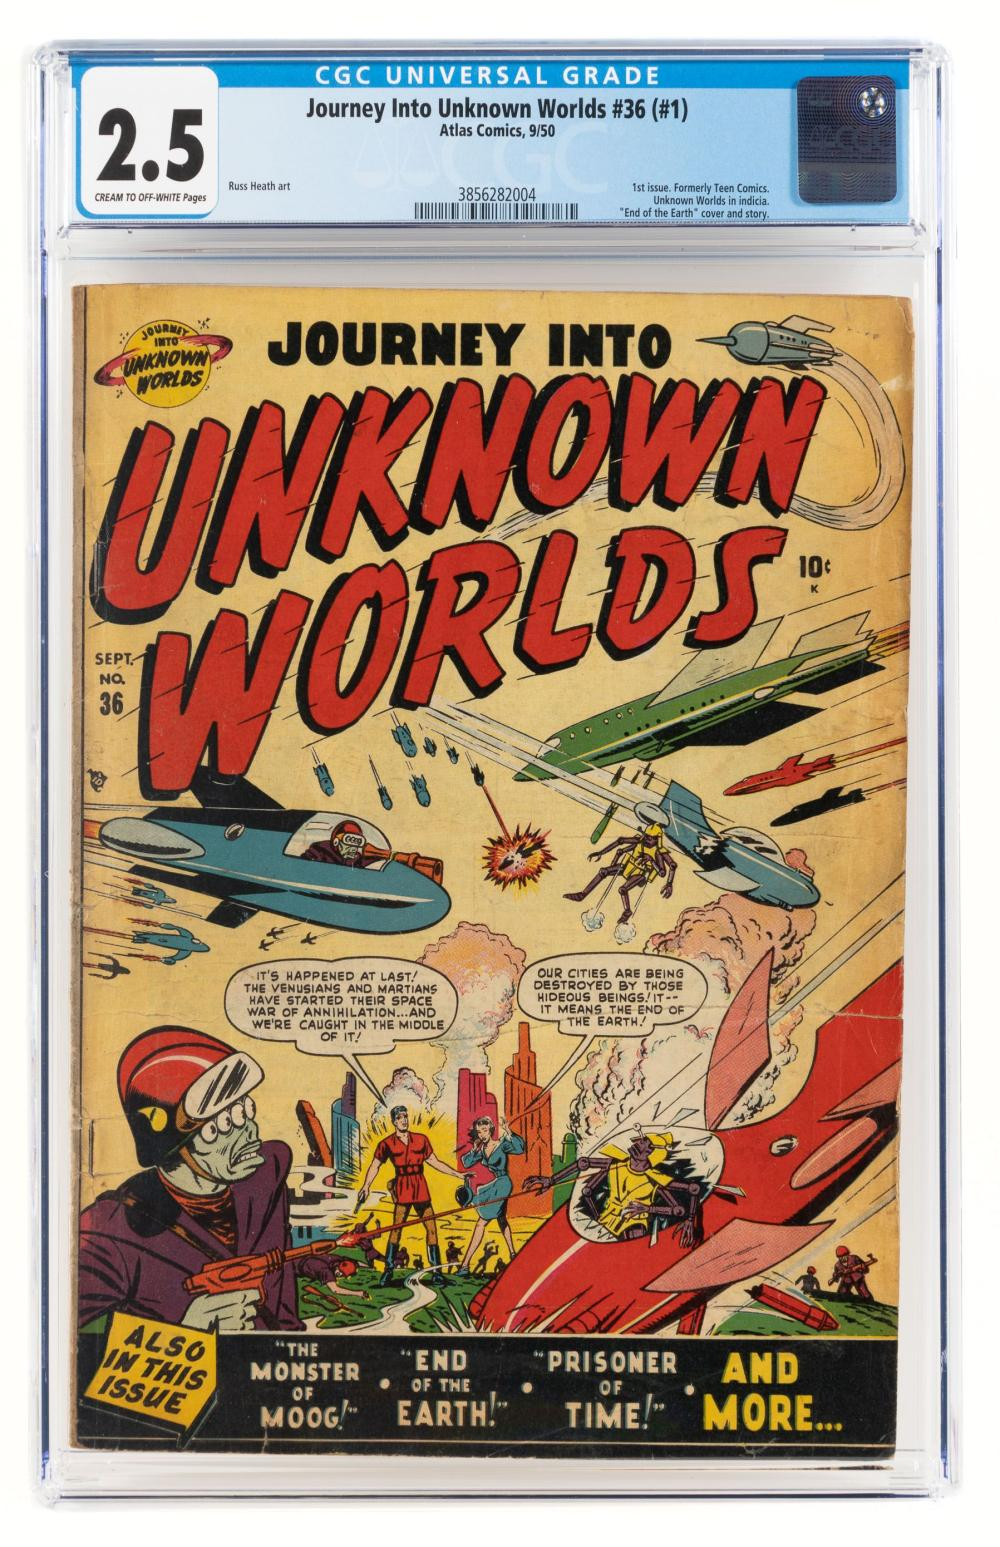 JOURNEY INTO UNKNOWN WORLDS #36 * 1st Ish * CGC 2.5 * End of the World